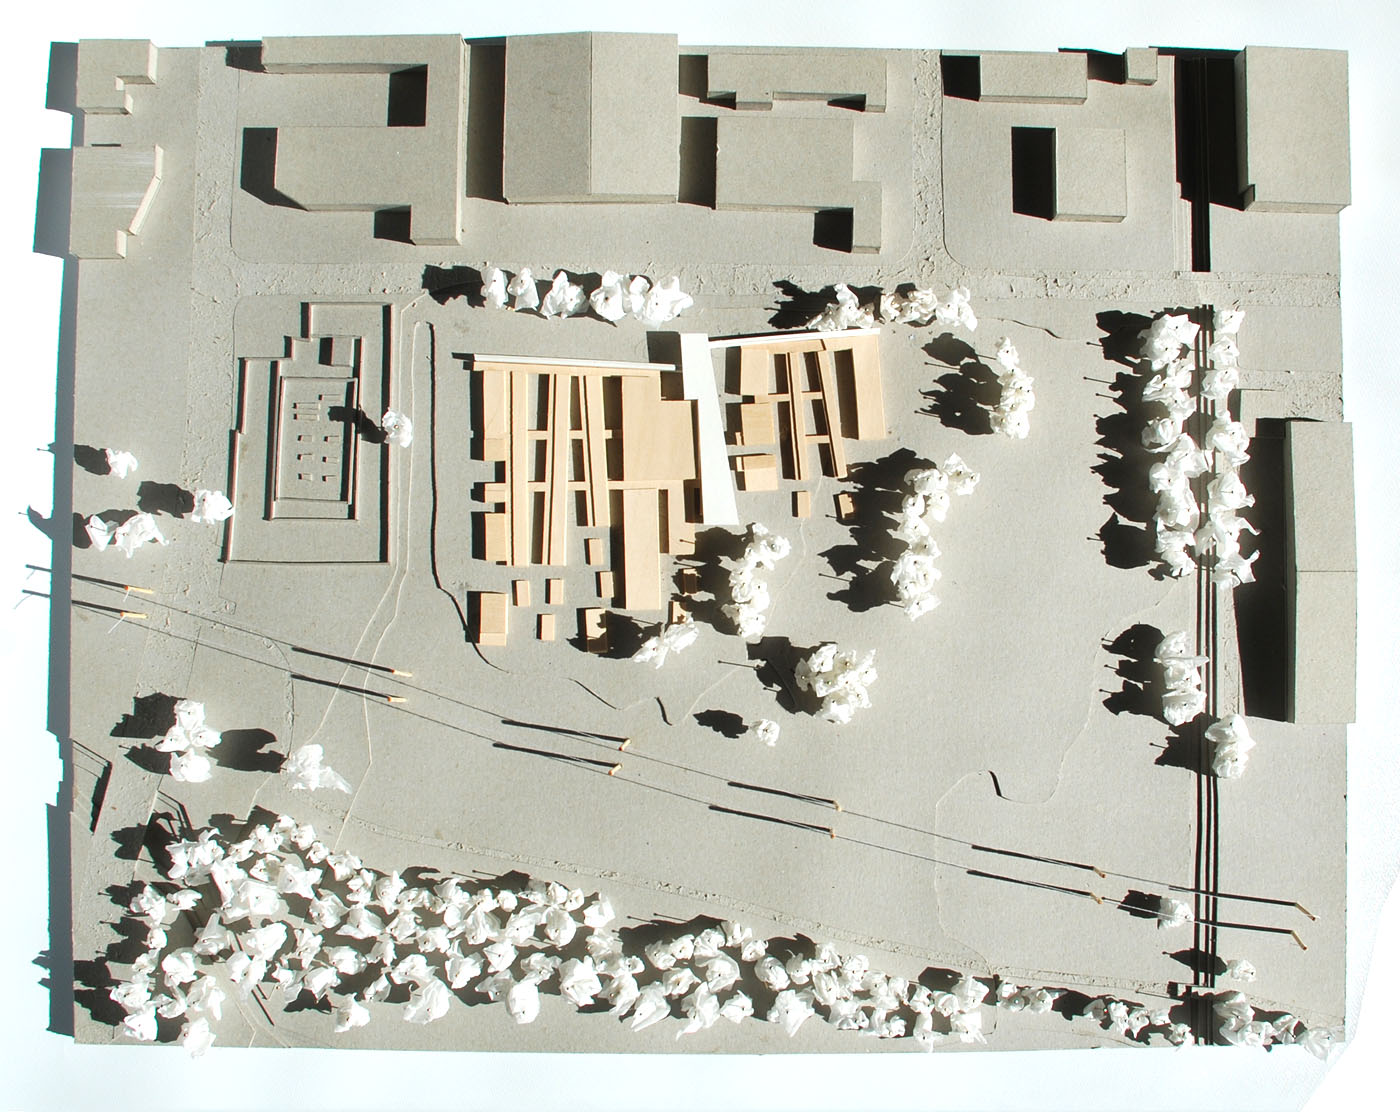 The Shelter by Sam Crawford Architects, grey boxboard and basswood site model